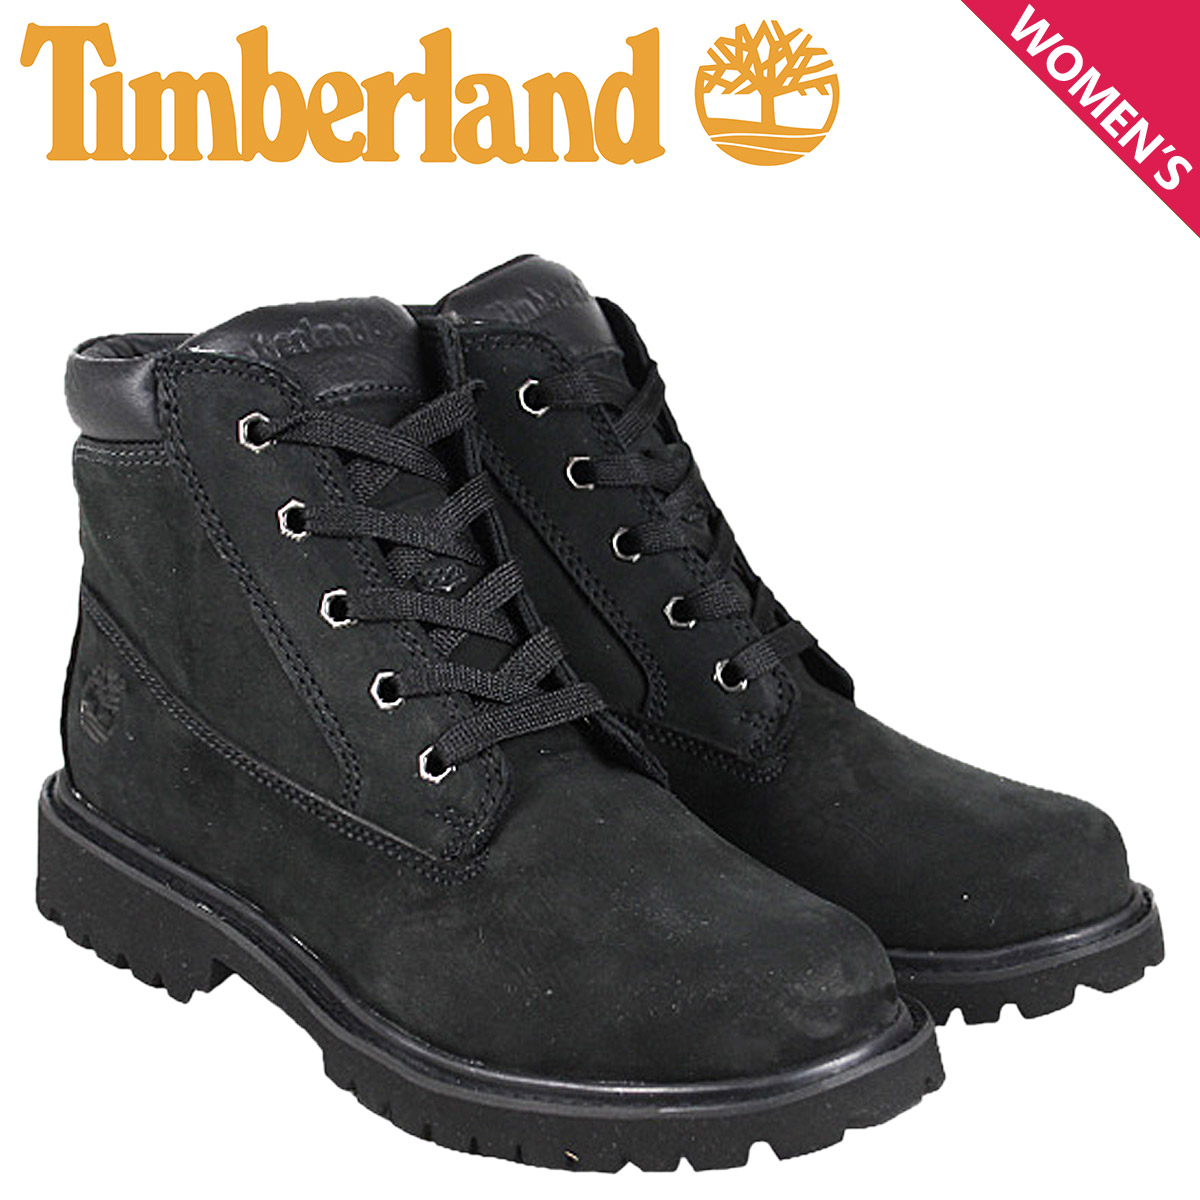 ALLSPORTS: Timberland Timberland Lady's roll top boot WOMENS